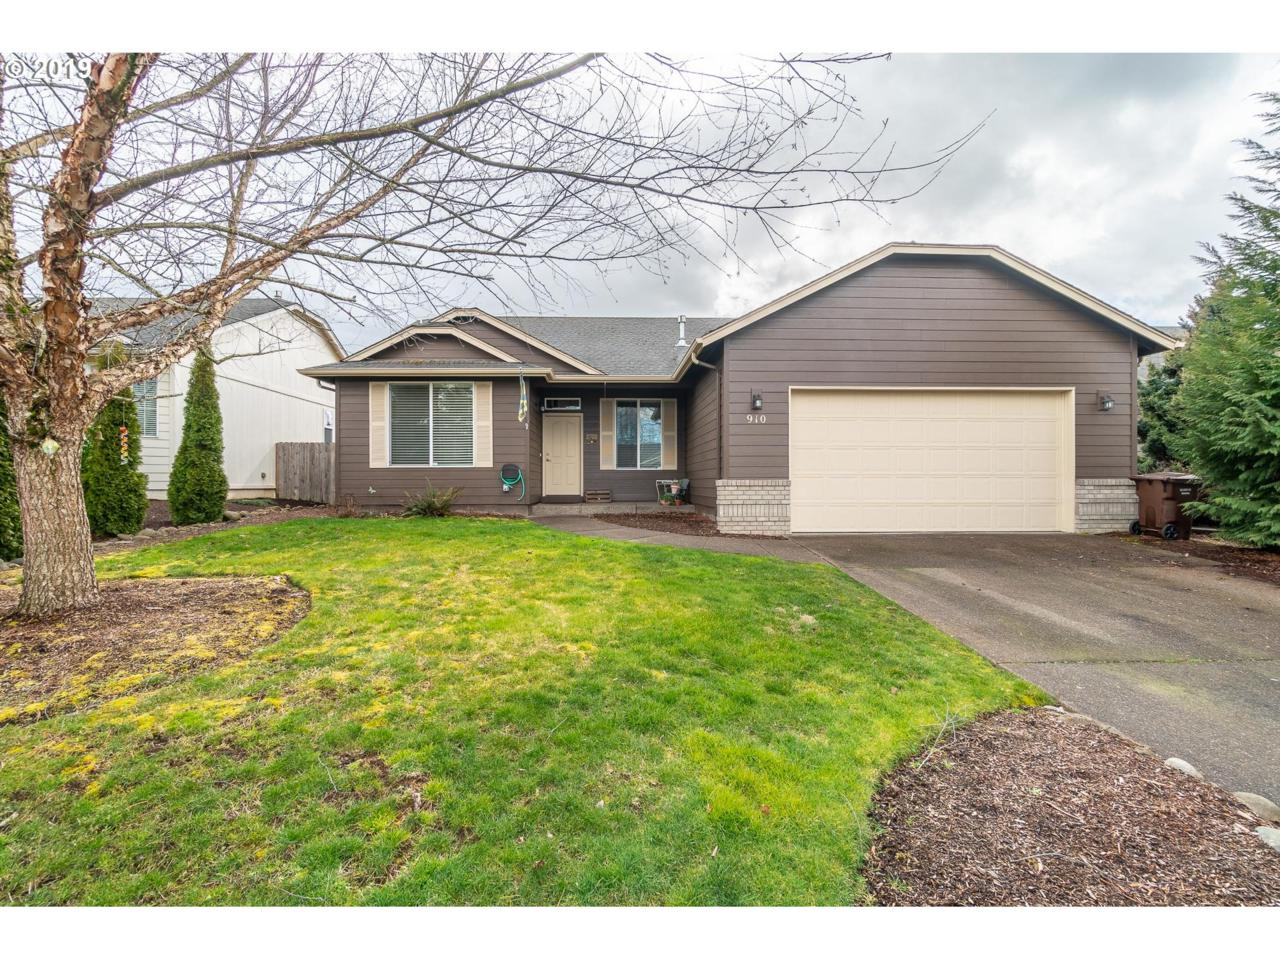 910 Meadow Dr - Photo 1